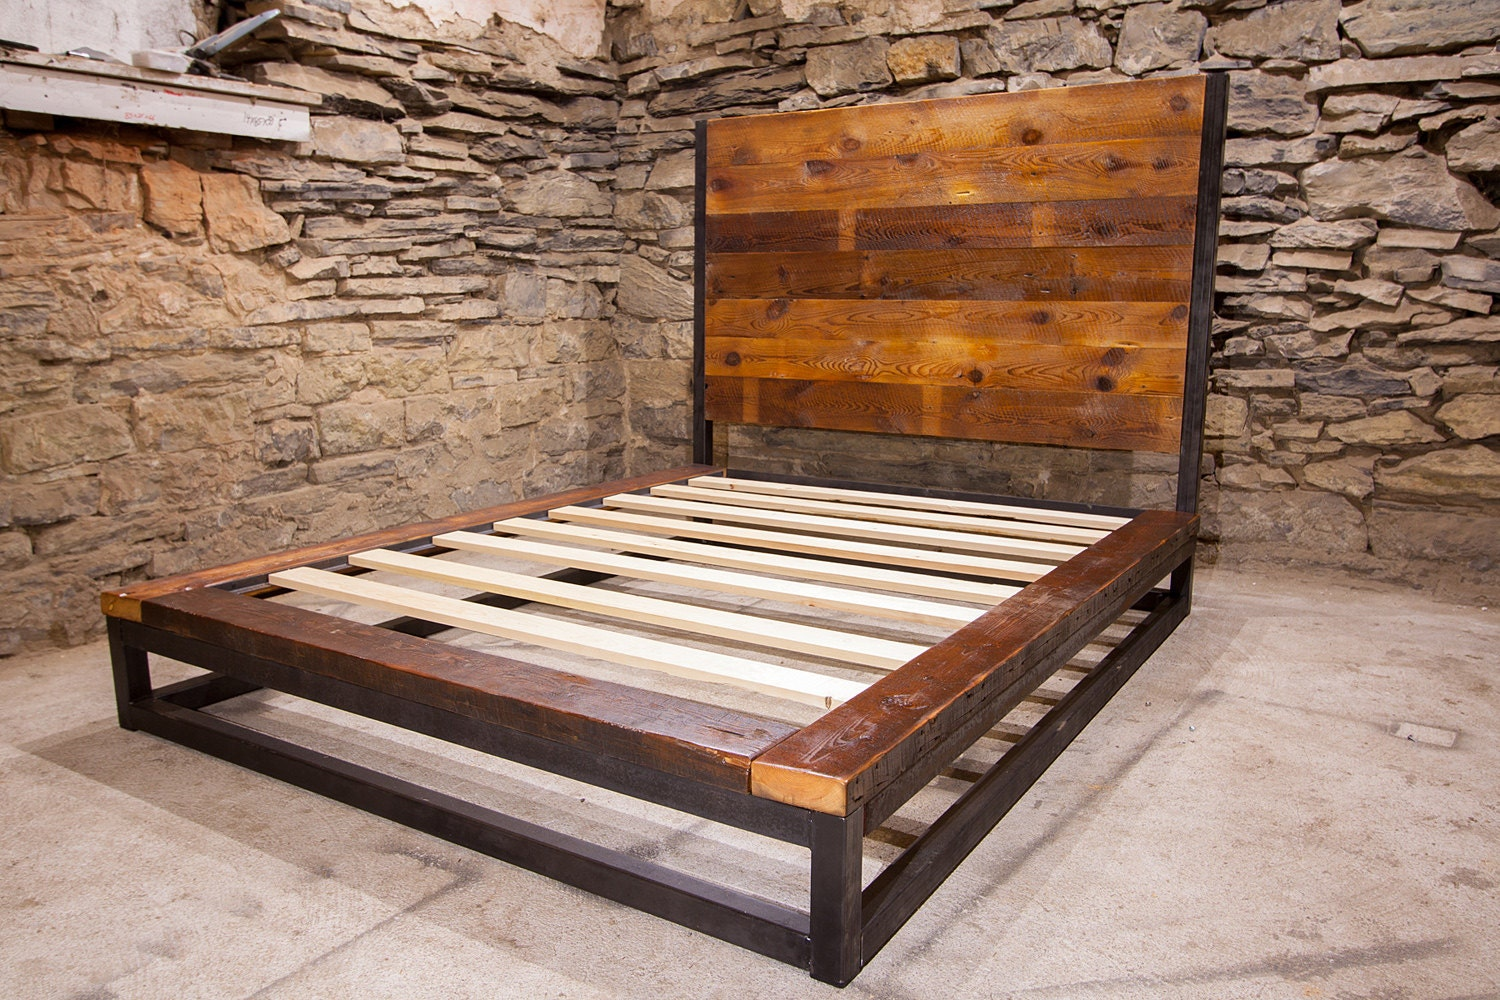 Reclaimed Wood Bed ~ Abbey road industrial platform bed from reclaimed wood